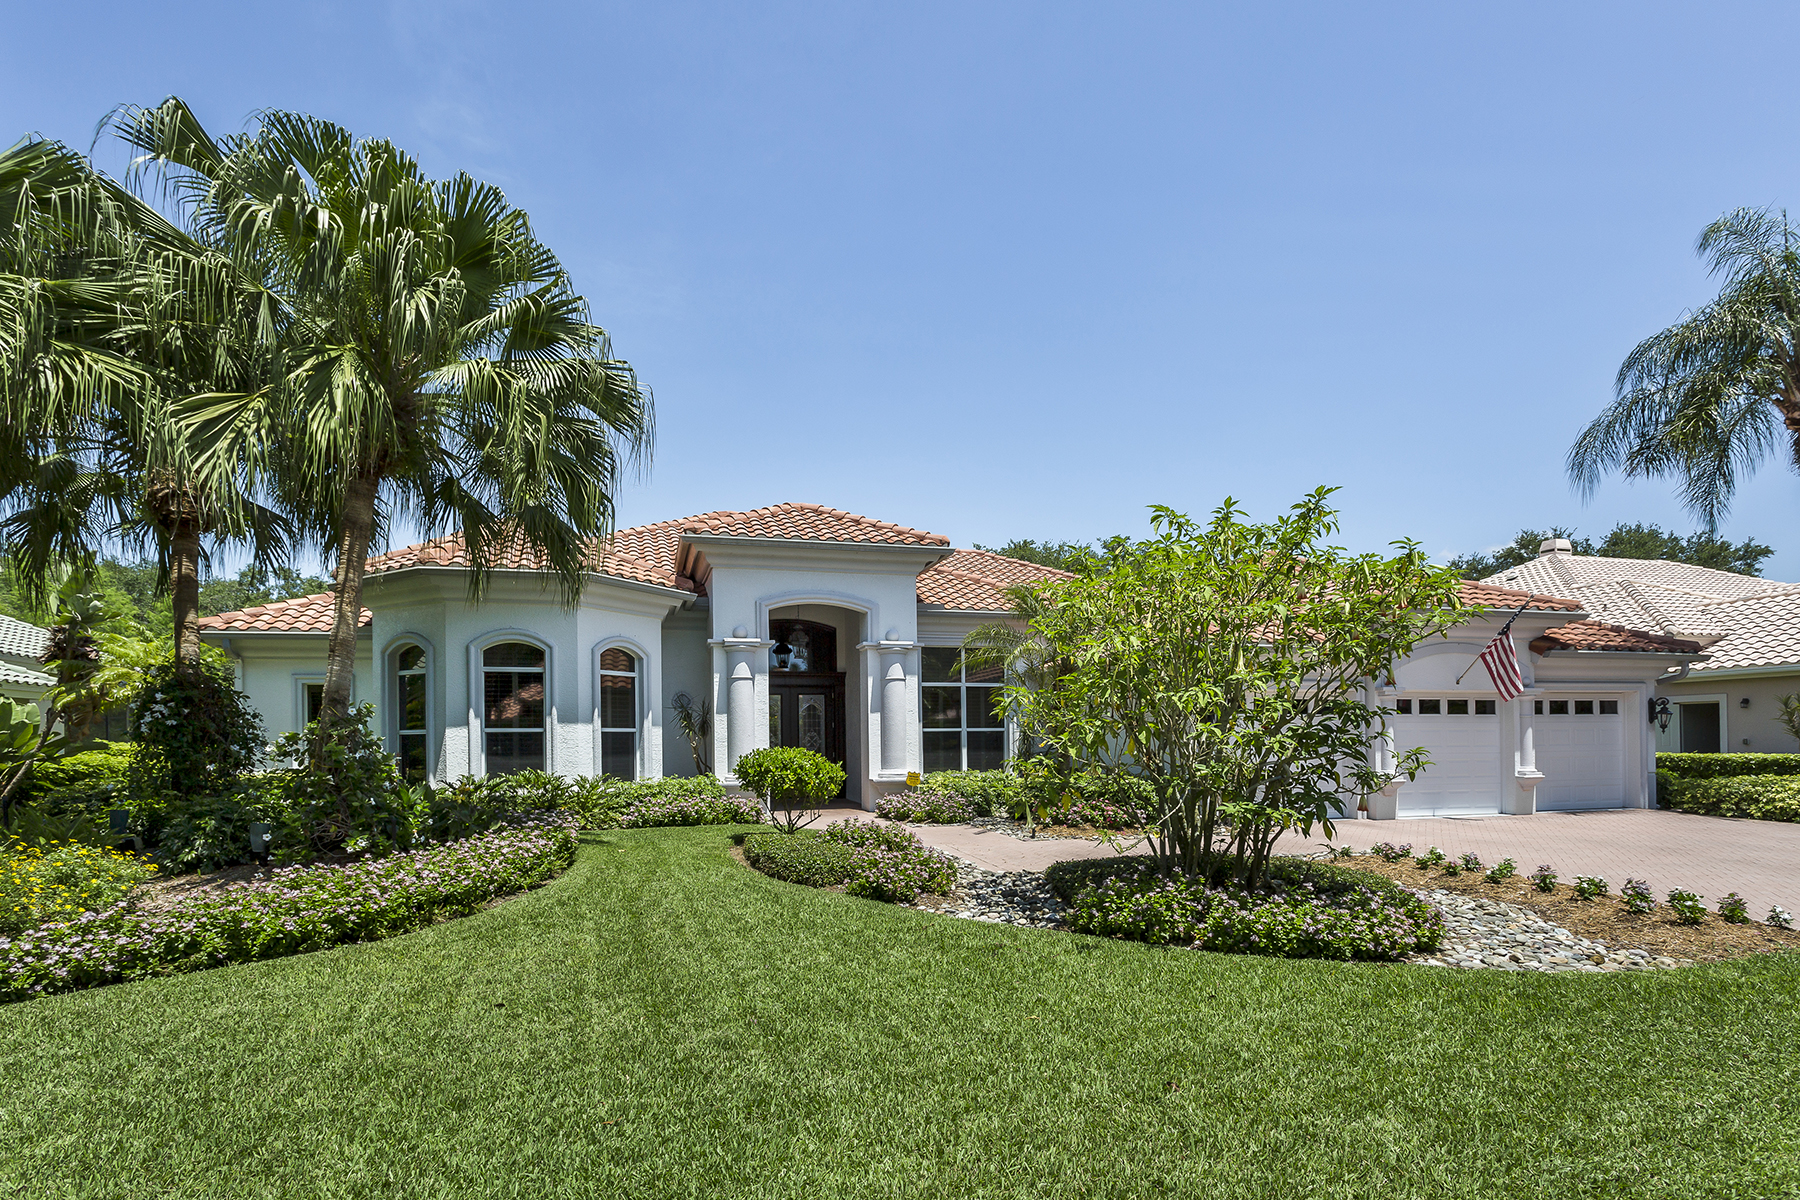 Single Family Home for Sale at Arbor Glen 6660 Glen Arbor Way Vineyards, Naples, Florida, 34119 United States